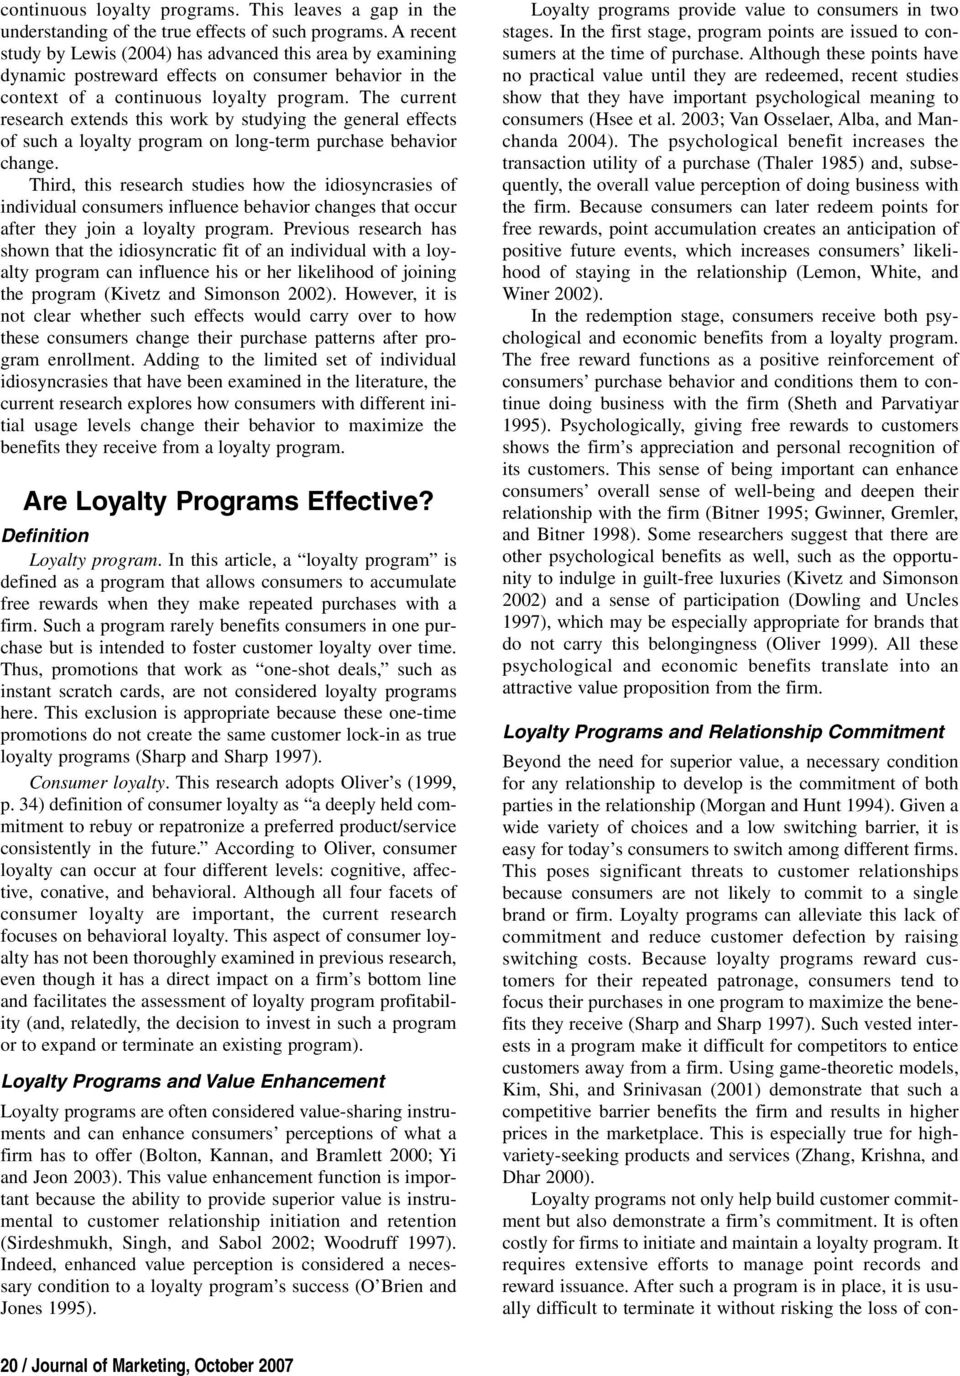 The current research extends ths work by studyng the general effects of such a loyalty program on long-term purchase behavor change.